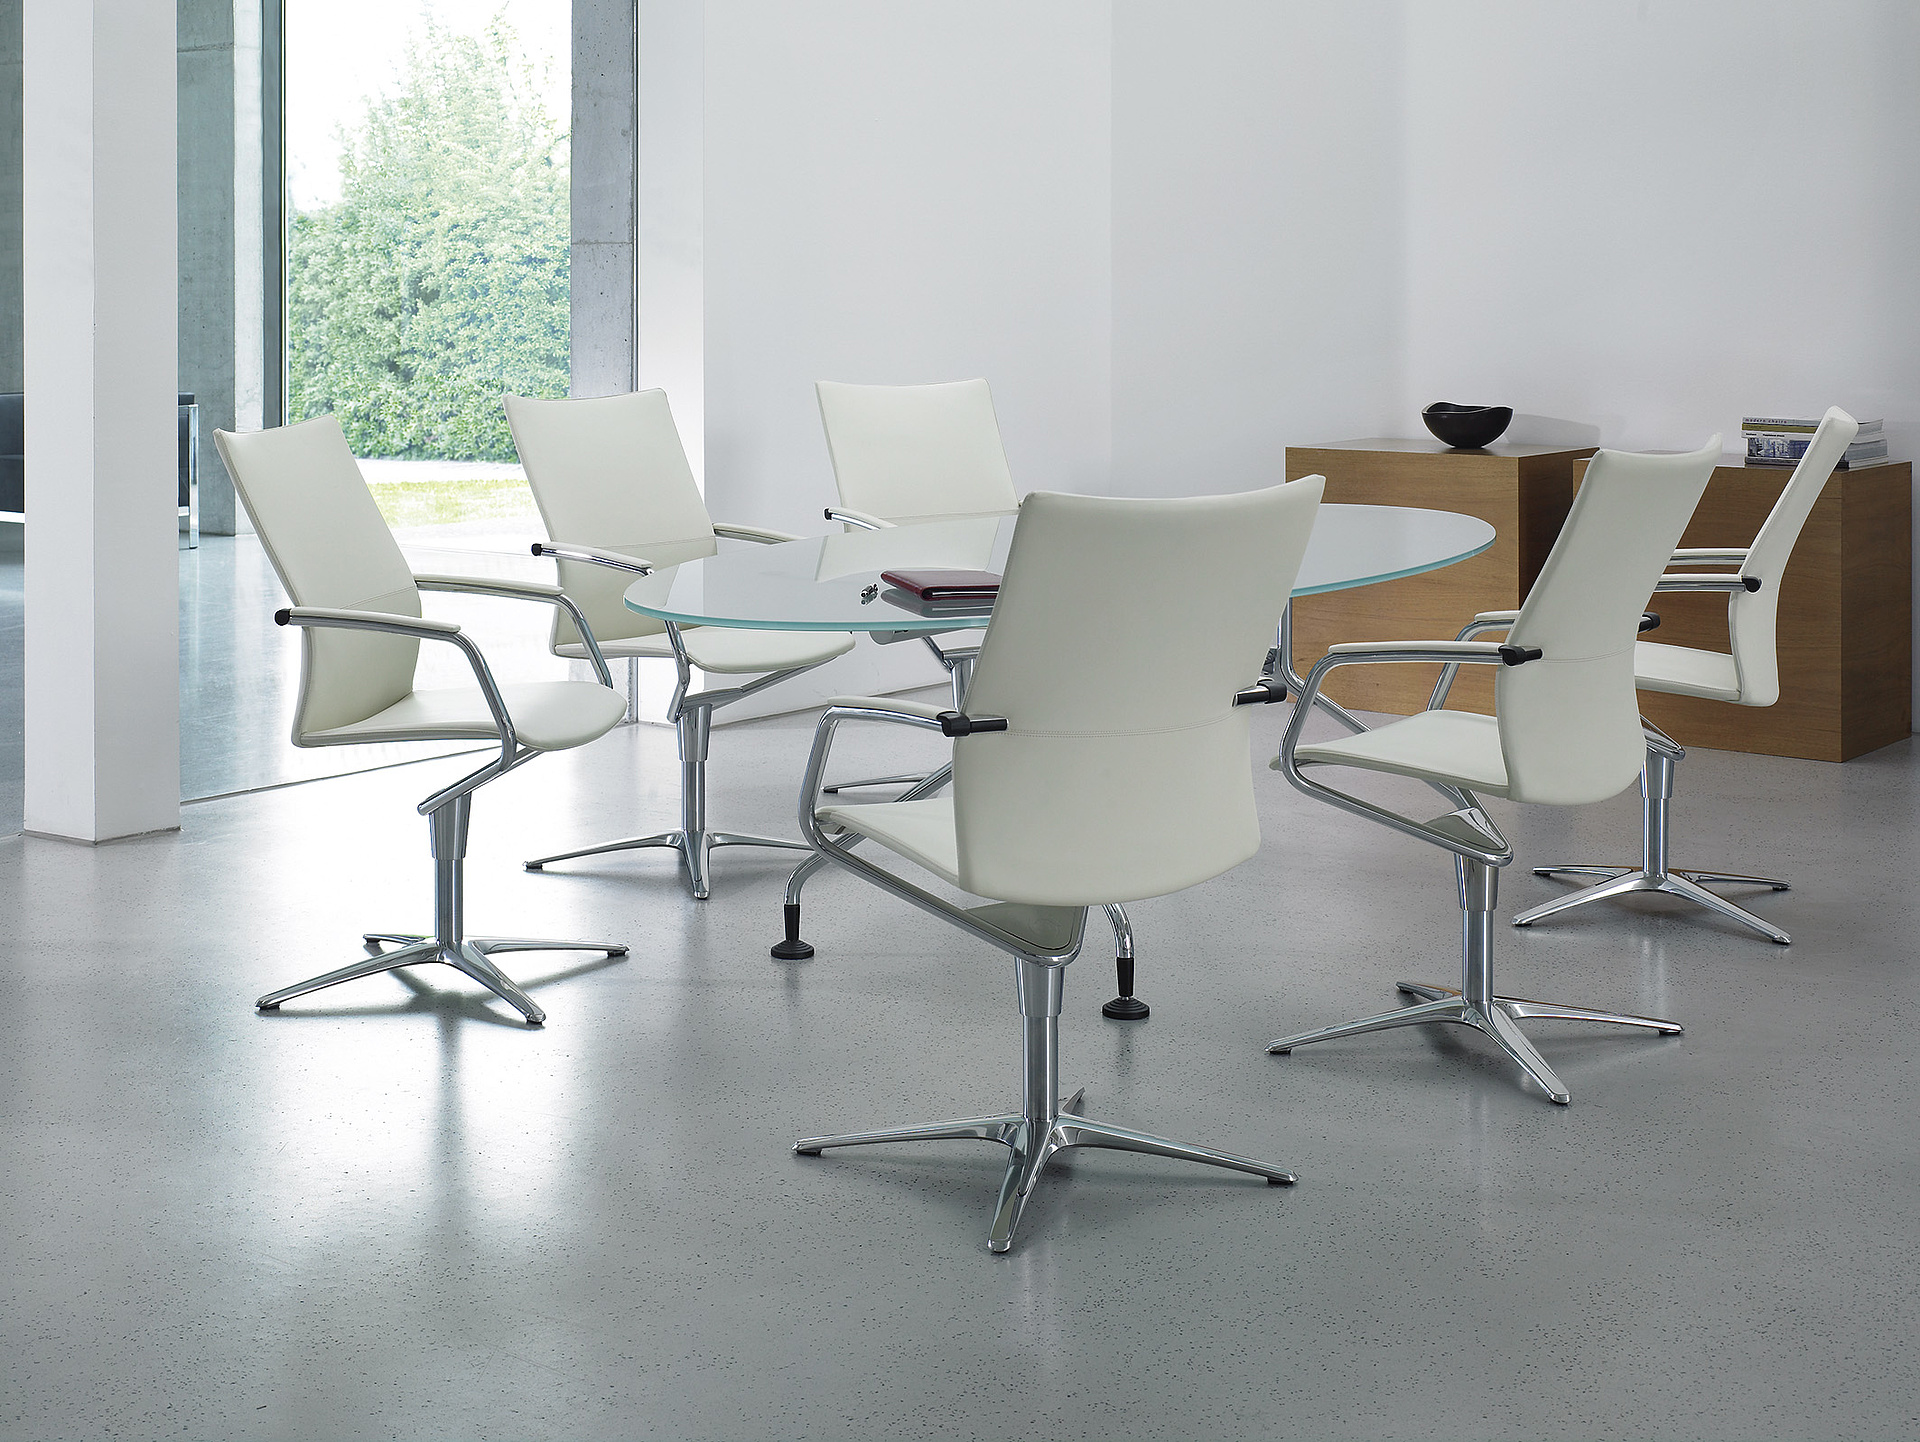 conference swivel chair conference room conference situation 4-star base design chrome